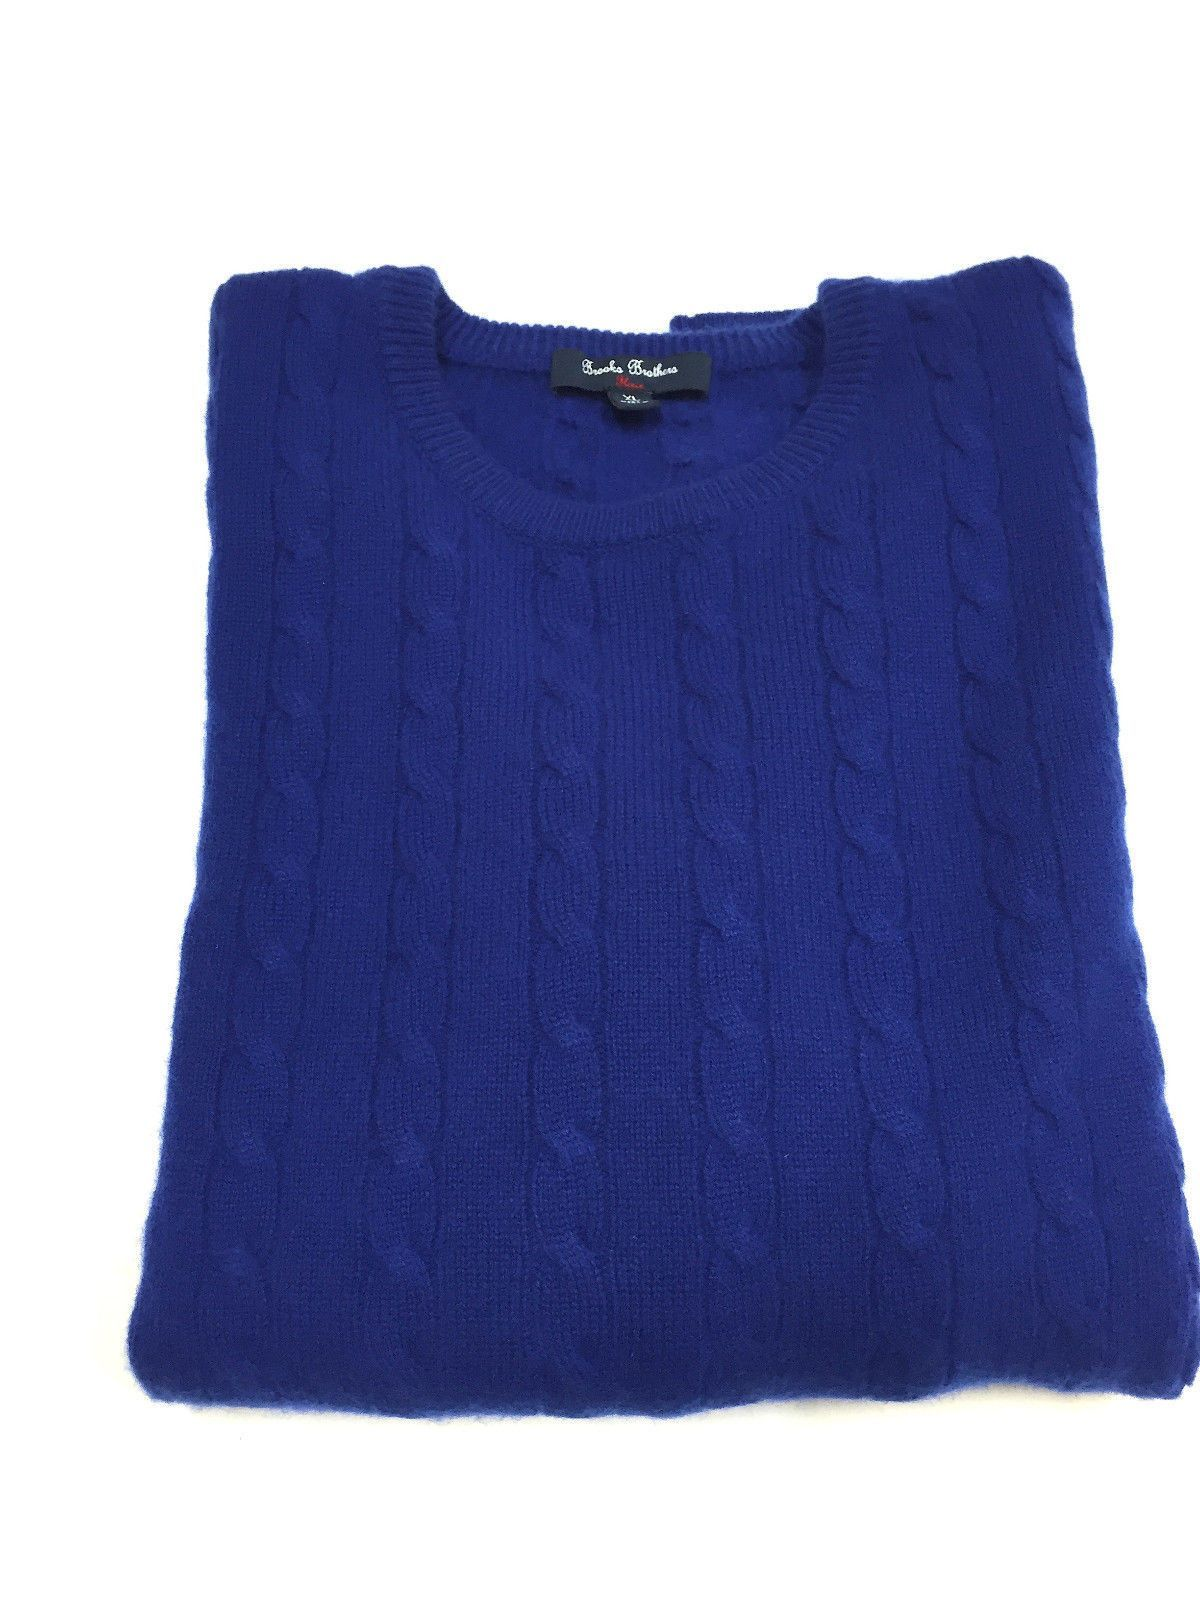 BROOKS Bros. Fleece Royal-Blue Cable-Knit Cashmere Men's Crewneck Sweater Size: XL